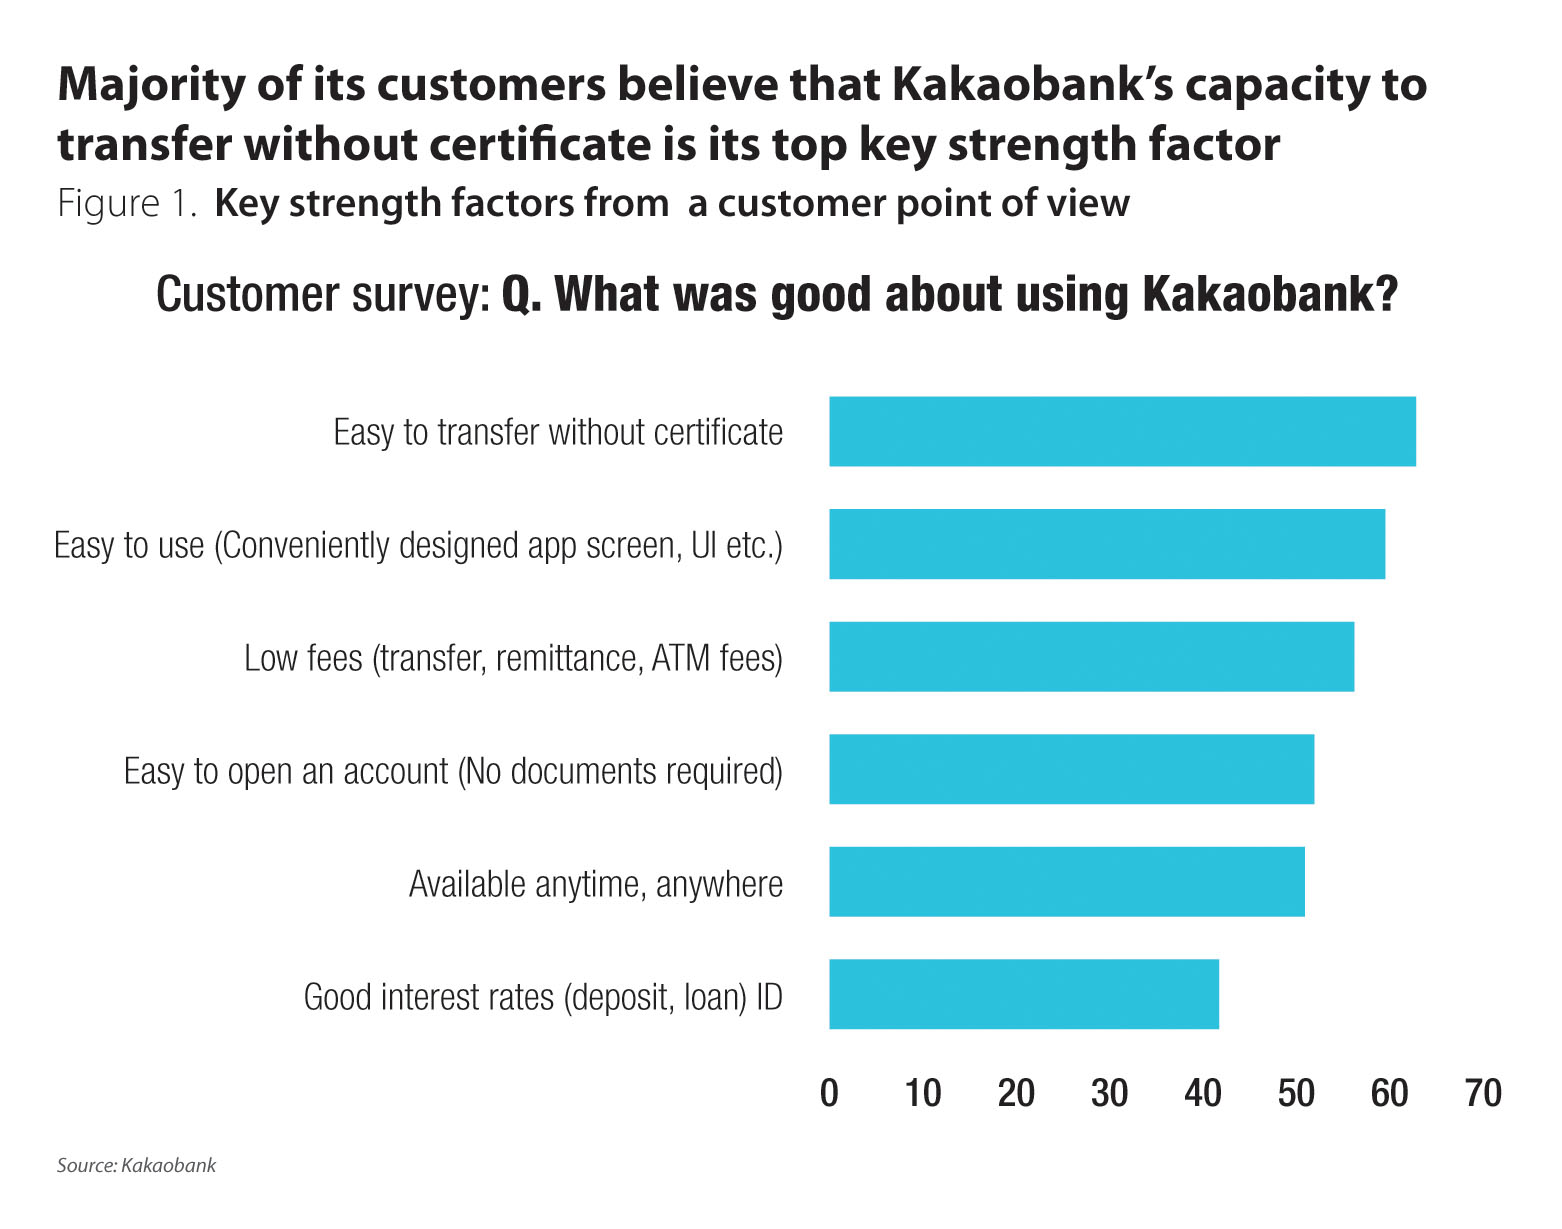 Innovation And A Strong Organisation Key To Kakaobanks Success Wiring Money South Korea Chosen For Their Core Digital Online Capabilities Leading Position In Markets Figure 2 Investment Holdings Kih Known Its